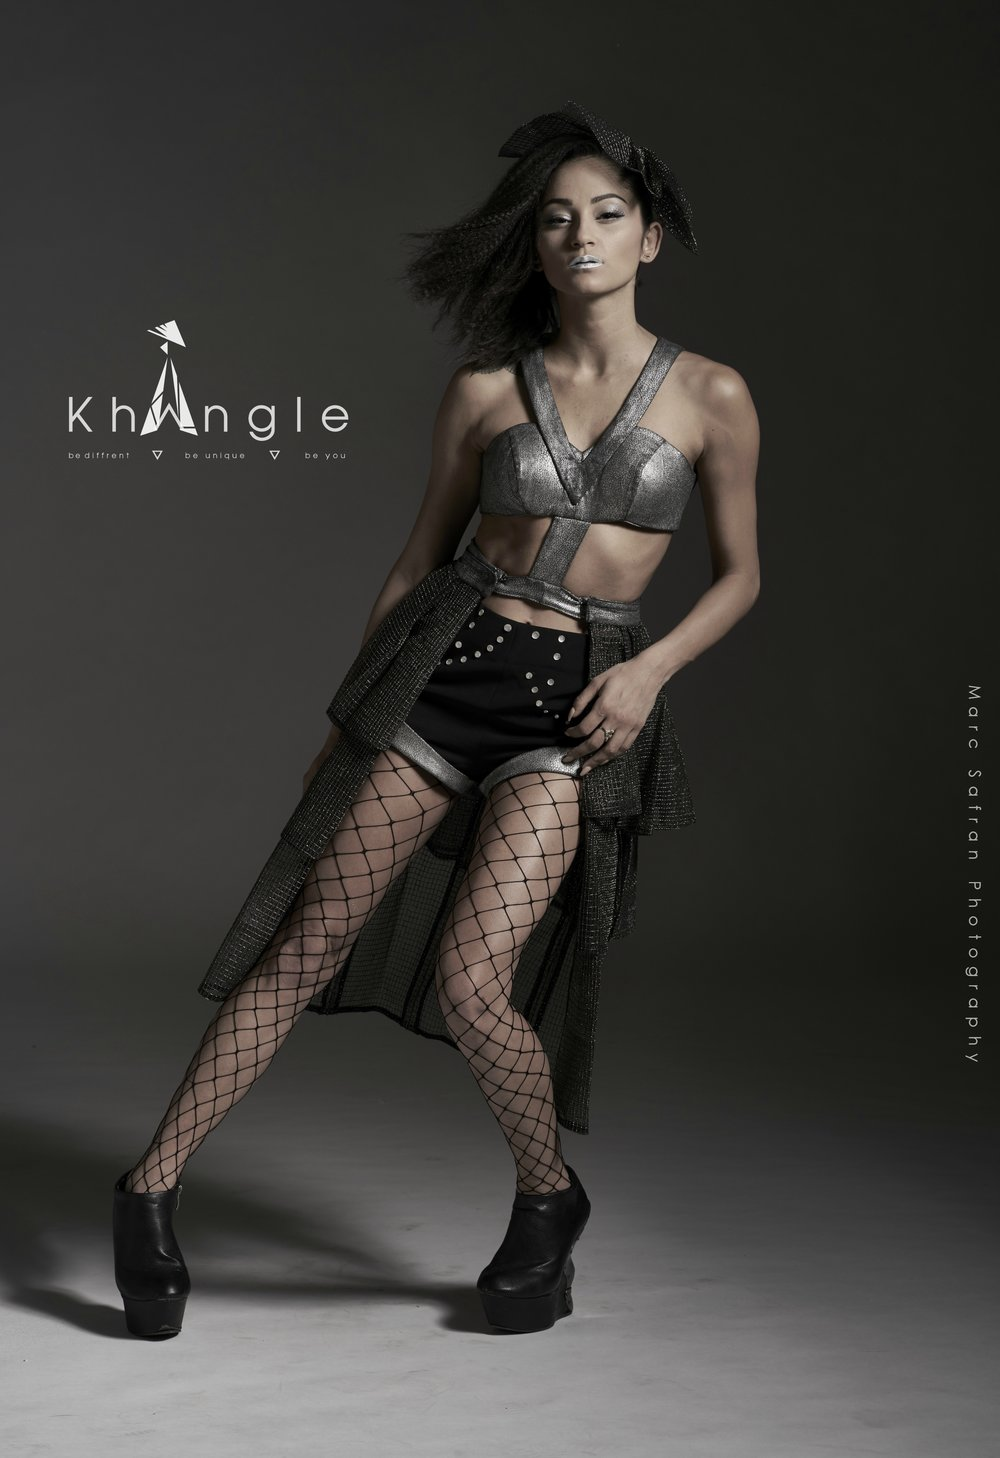 f9ed607174a6-0617_KhangLeFashion294.jpg